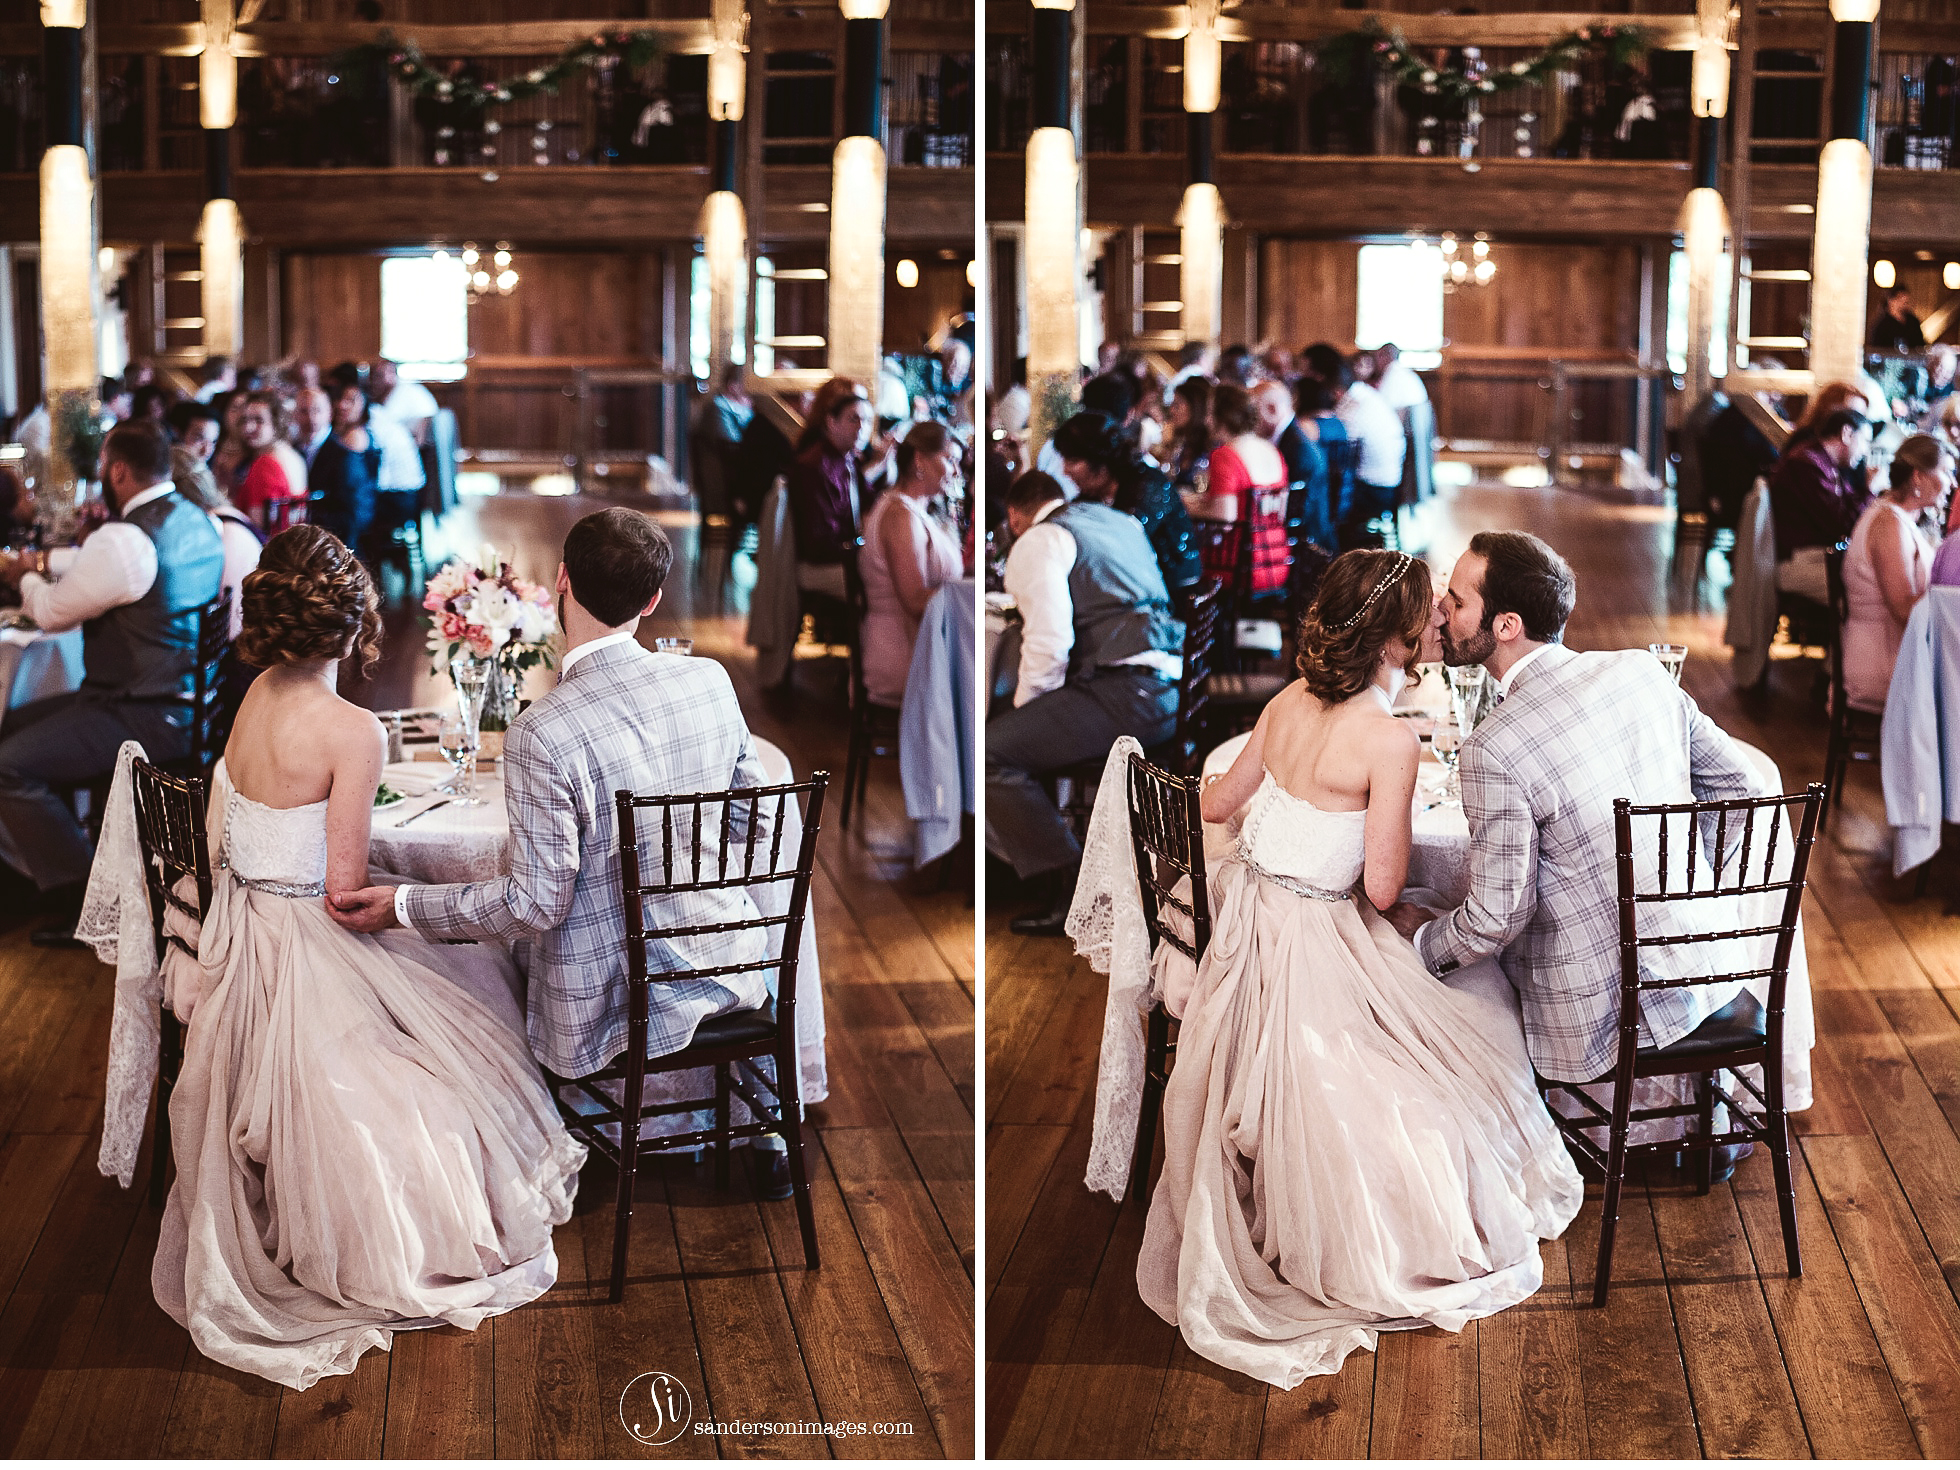 060-sanderson-images-Harvest-View-barn-hershey-wedding-photos ...